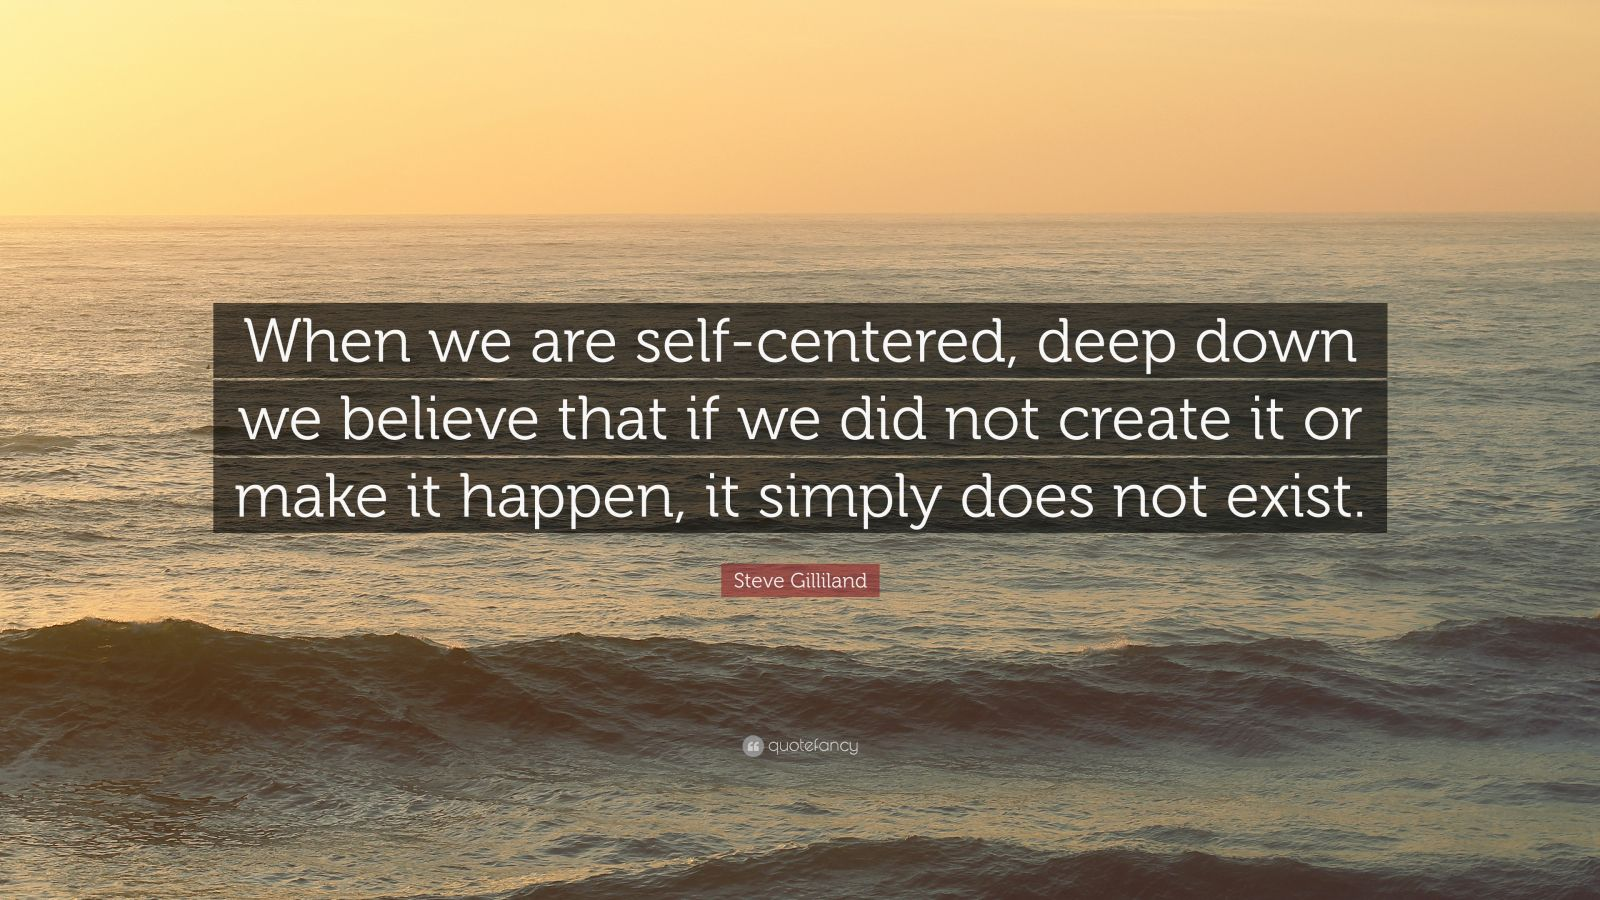 "Steve Gilliland Quote: ""When we are self-centered, deep down we believe that if we did not create it or make it happen, it simply does not exist."""